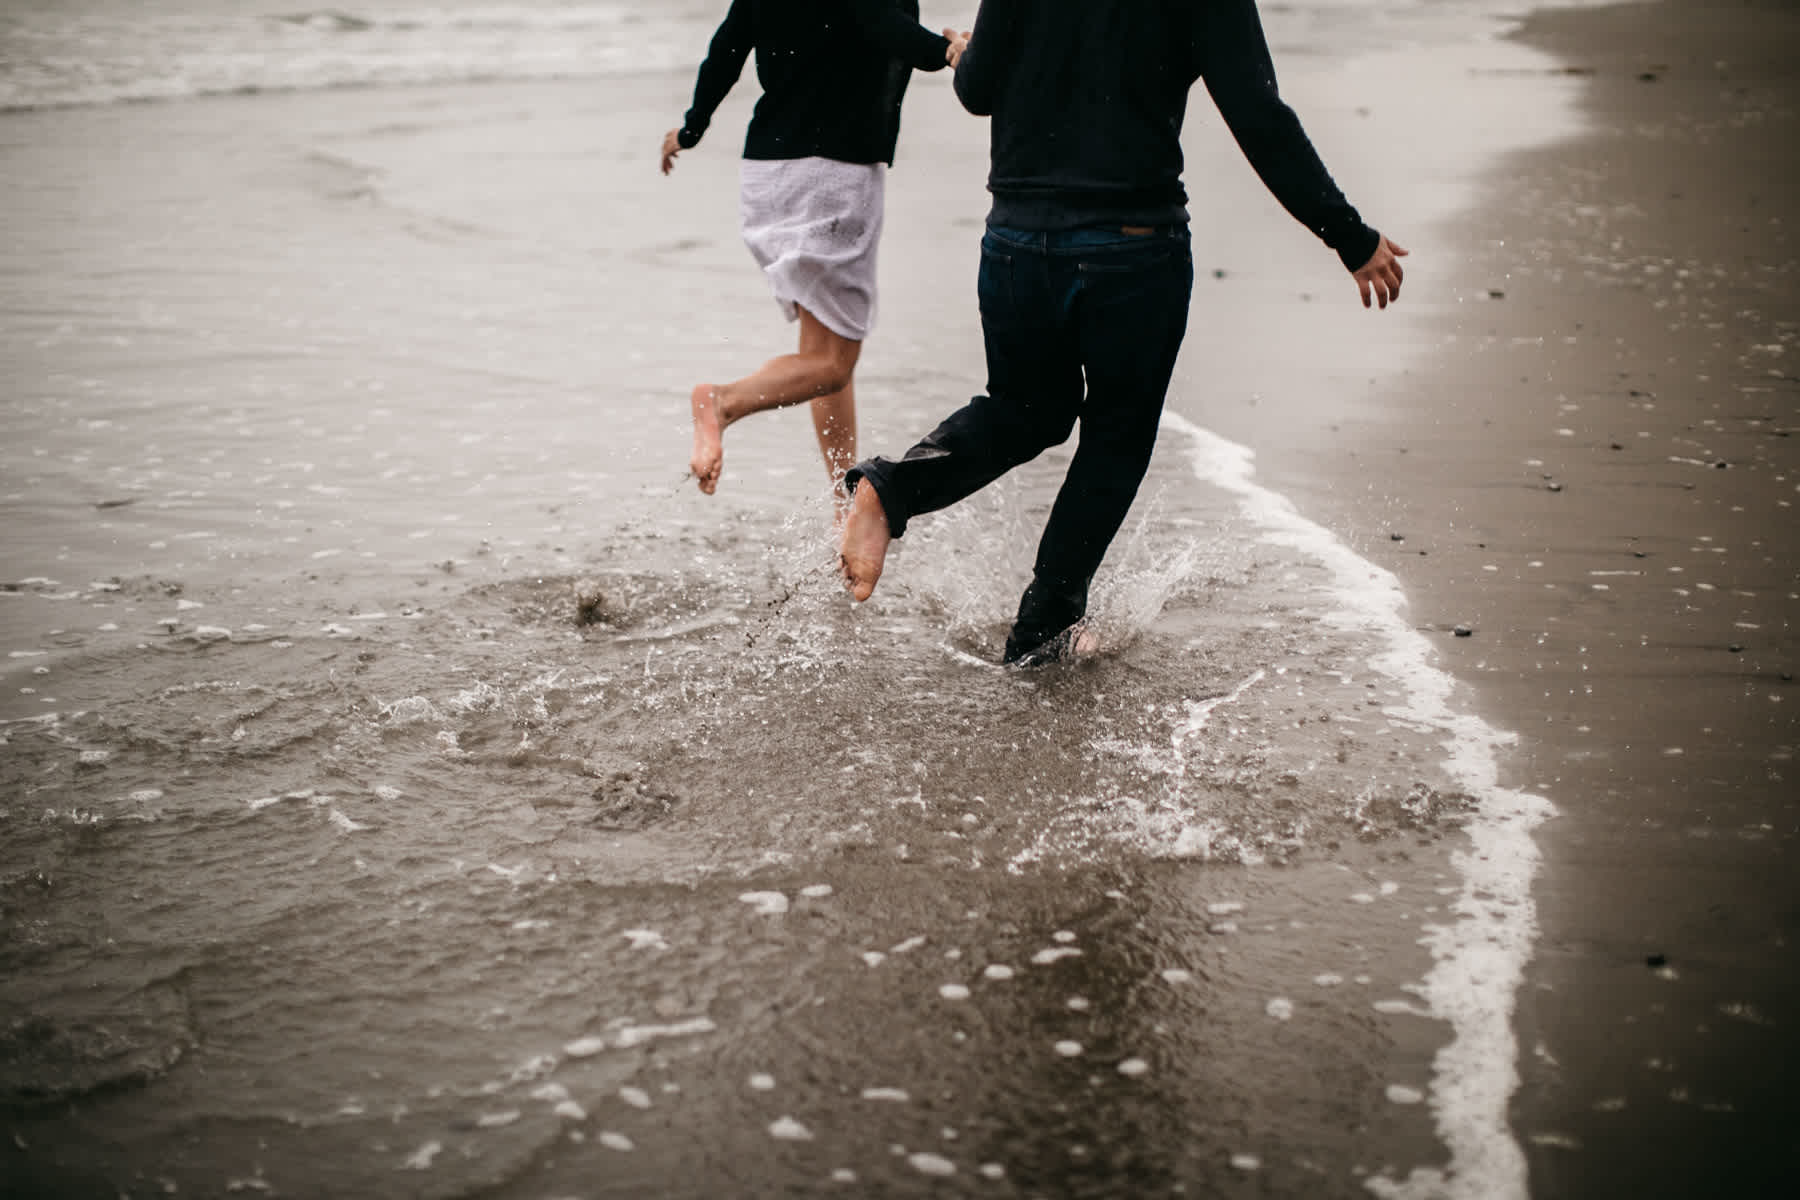 fort-funston-foggy-fun-beach-water-engagement-session-74